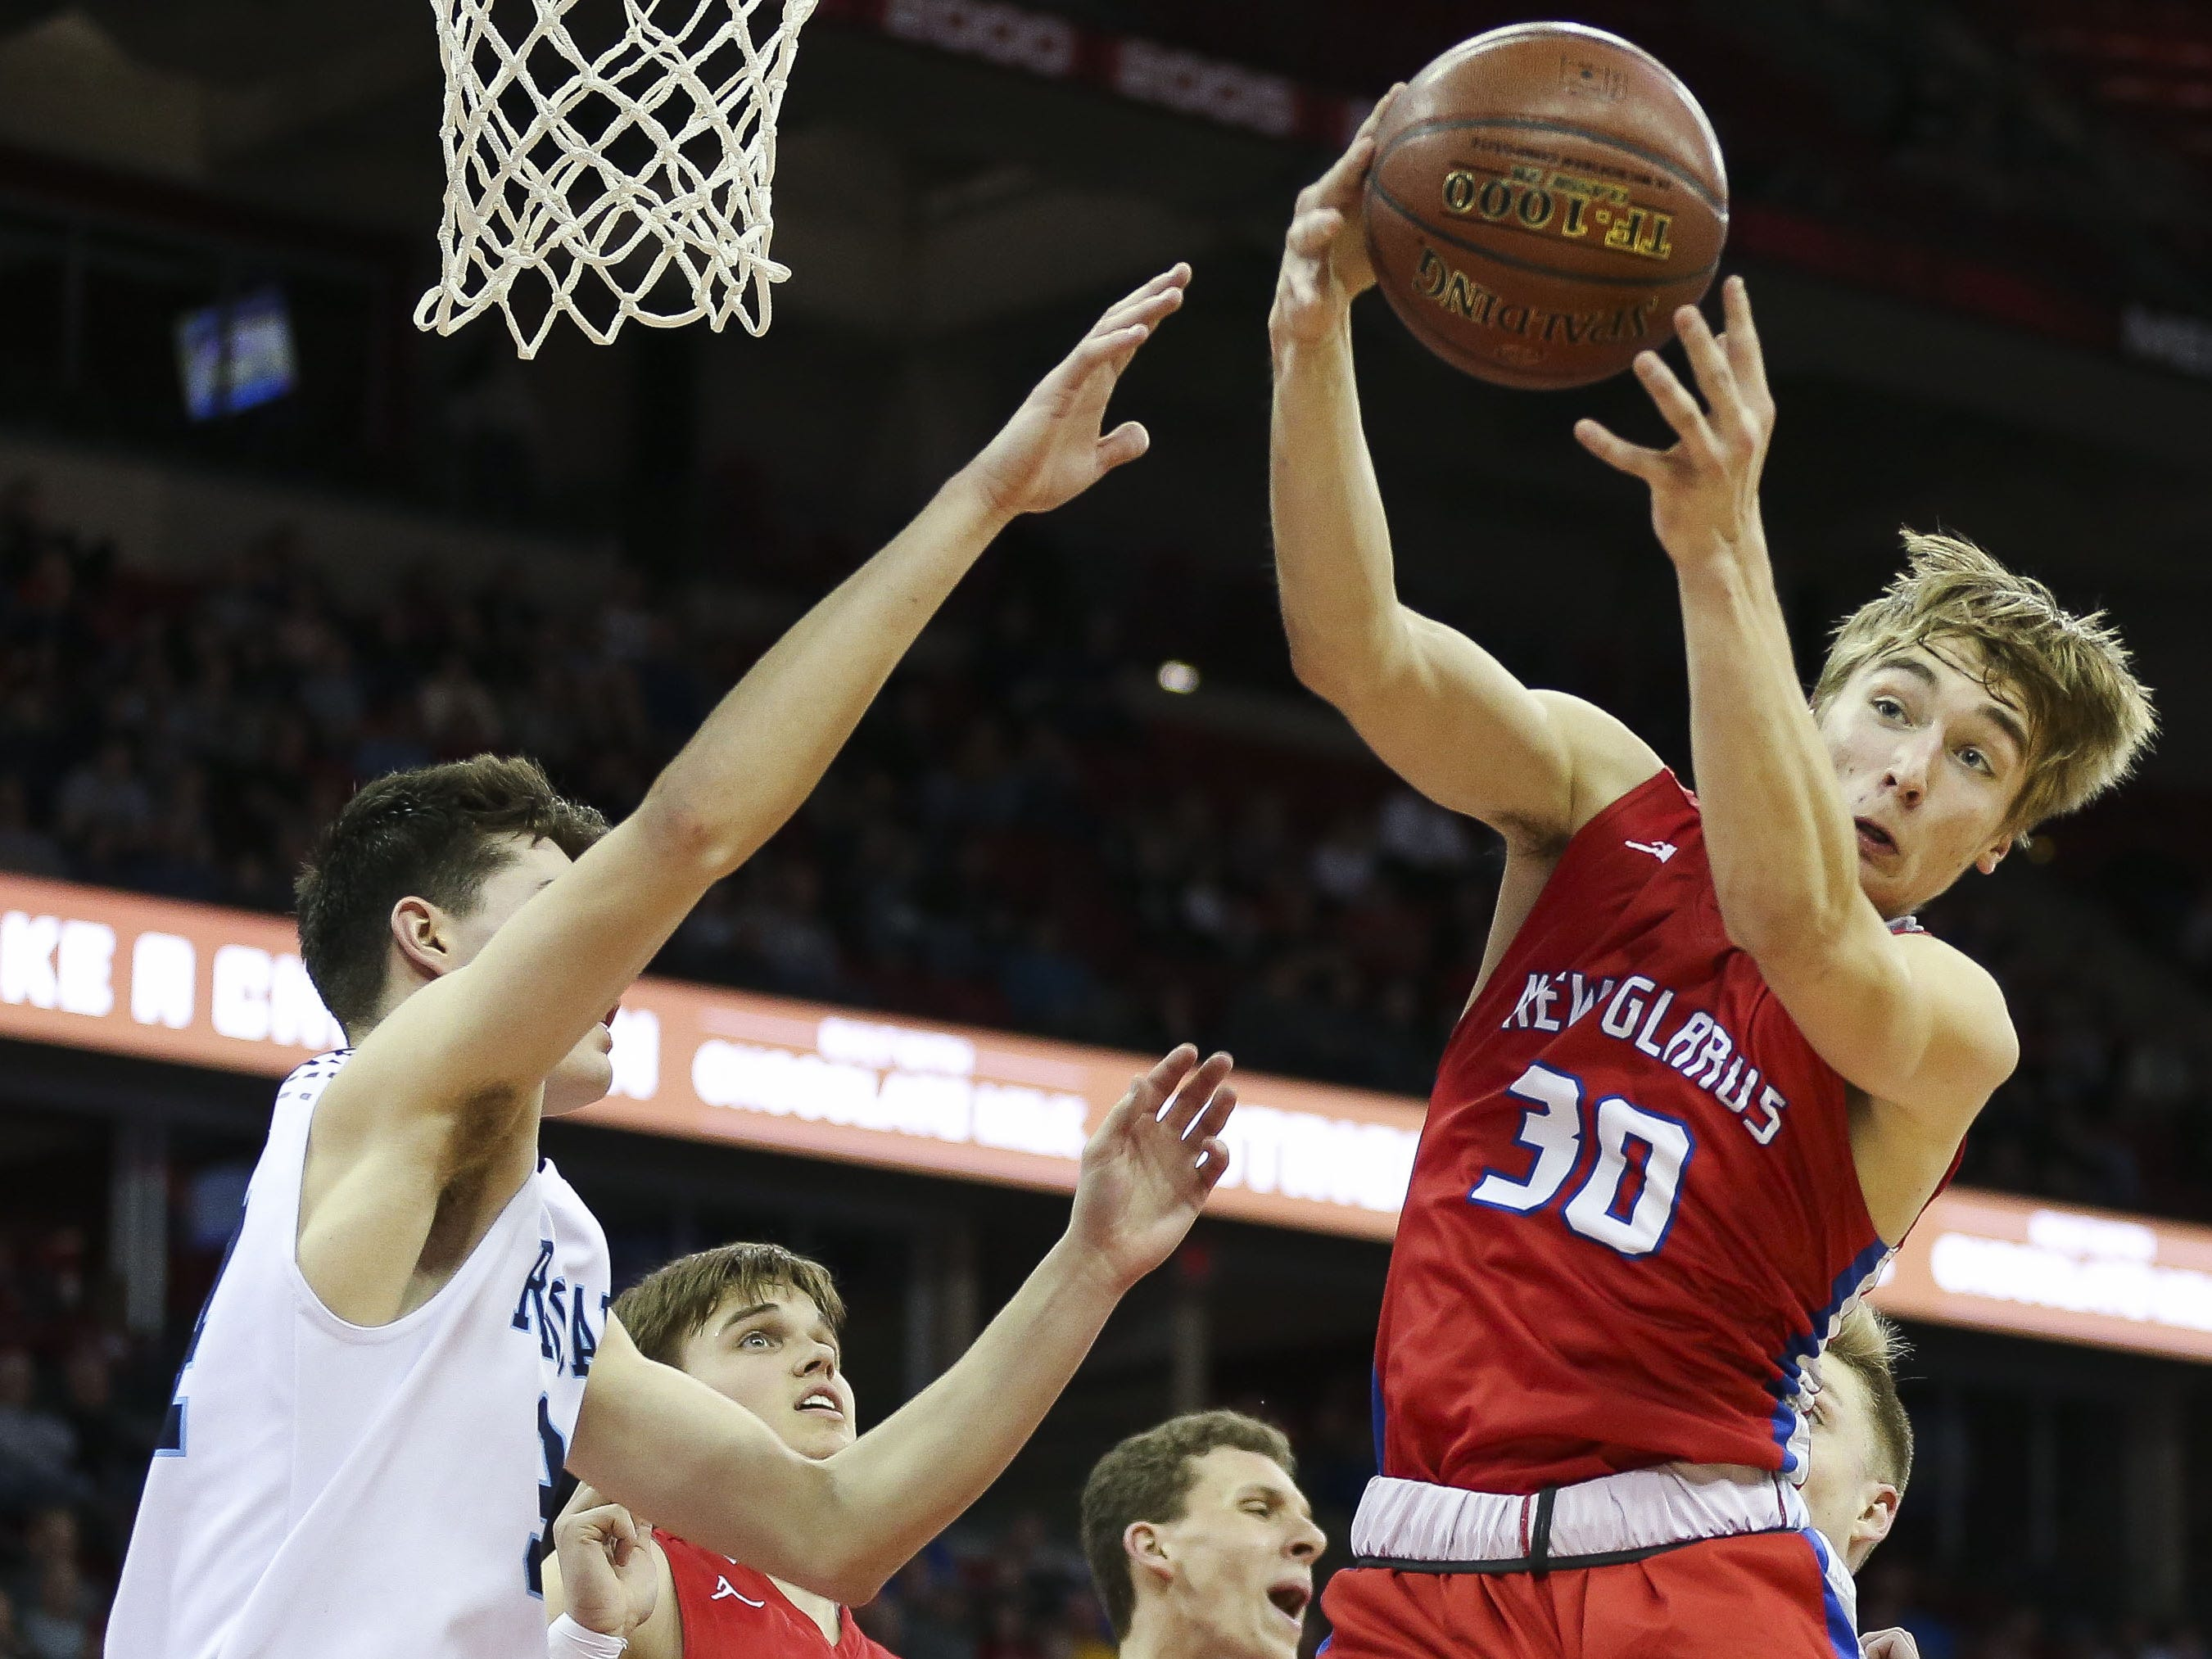 New Glarus High School's Trevor Gassman (30) pulls down a rebound against Roncalli High School in a Division 4 boys basketball state semifinal on Thursday, March 14, 2019, at the Kohl Center in Madison, Wis. New Glarus won the game, 44-41, to advance to Saturday's championship game. Tork Mason/USA TODAY NETWORK-Wisconsin